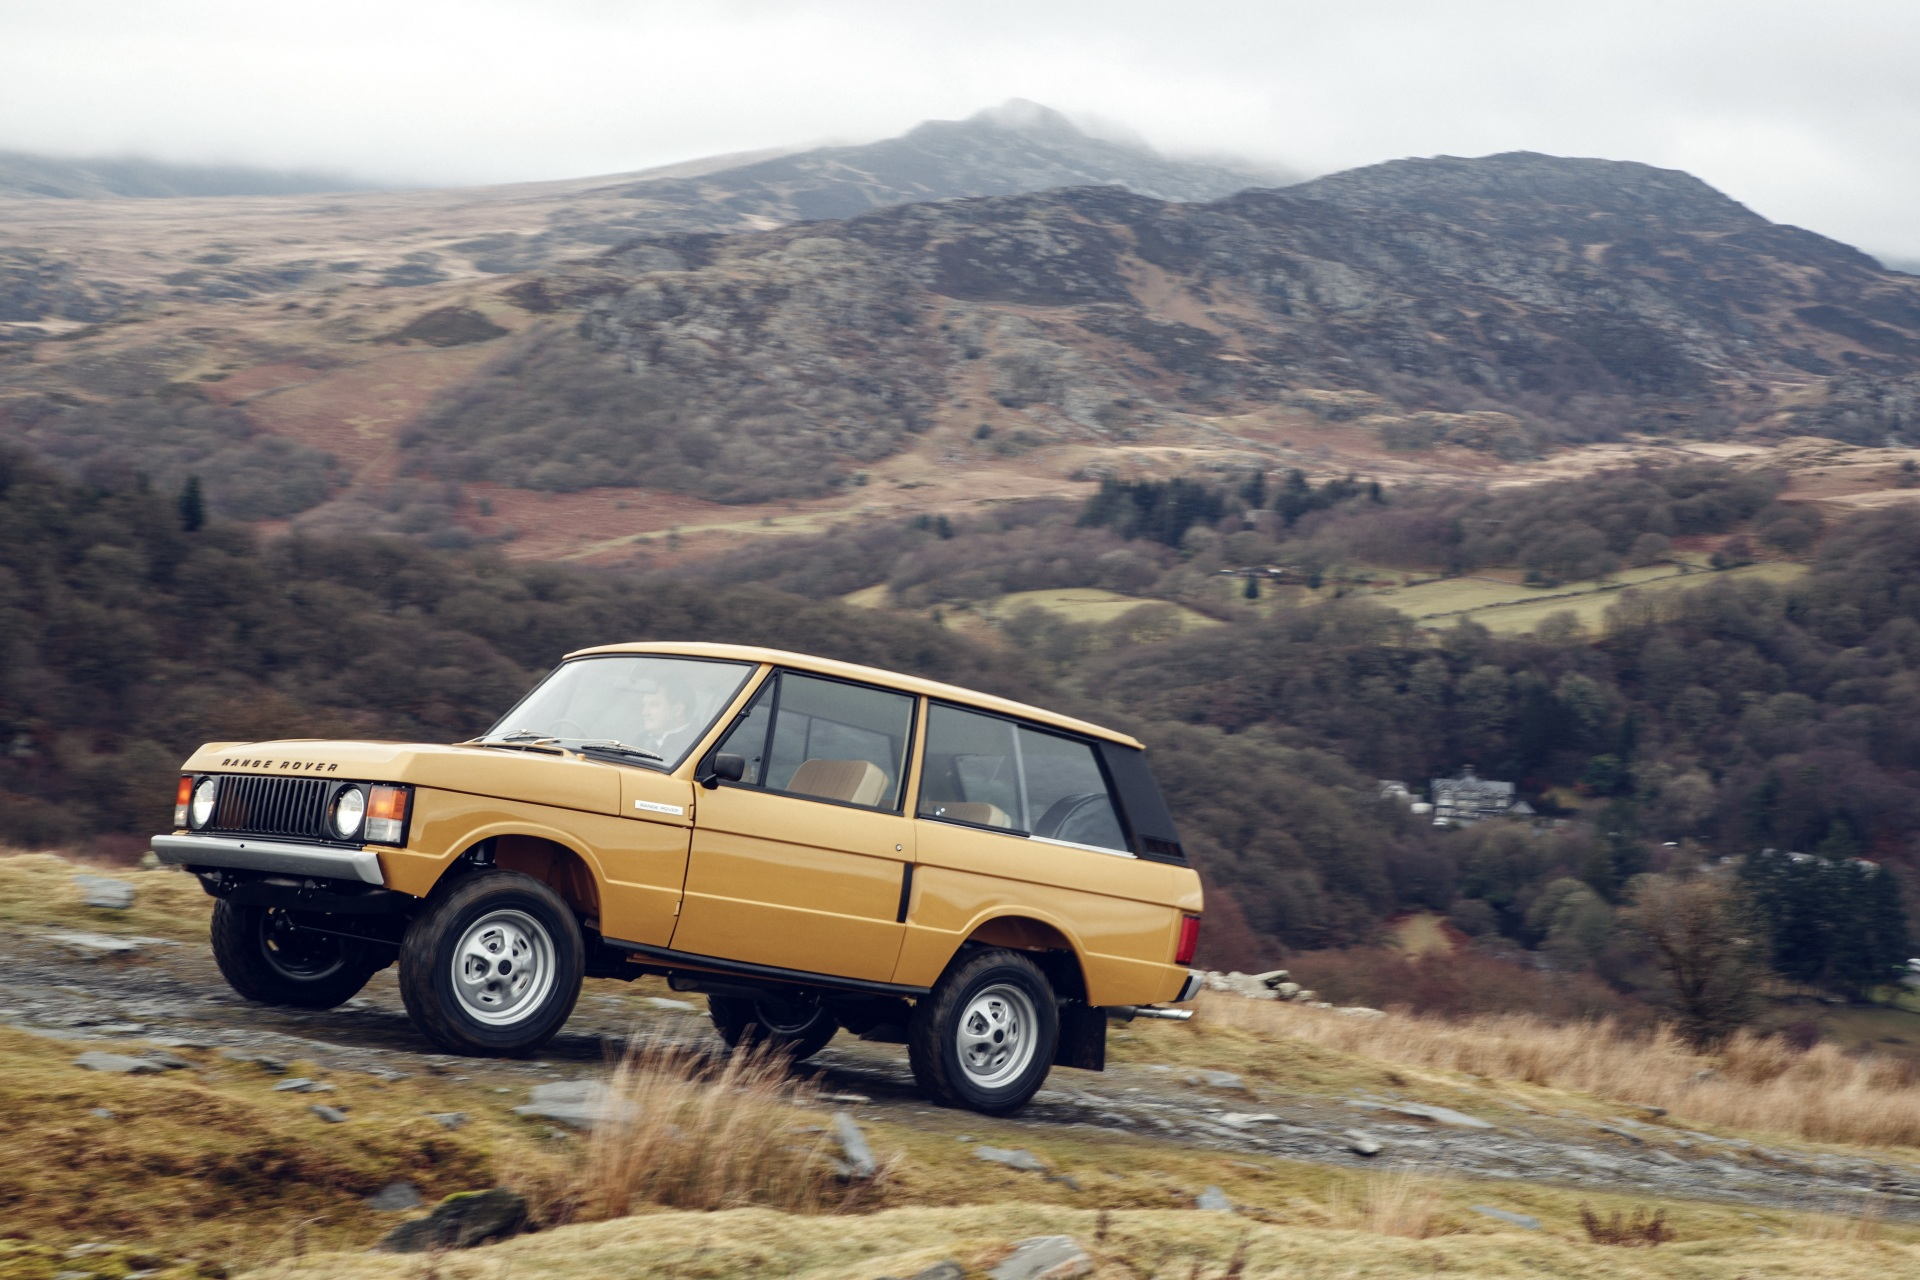 The restored 1979 Range Rover Three Door  (Range Rover Photo)